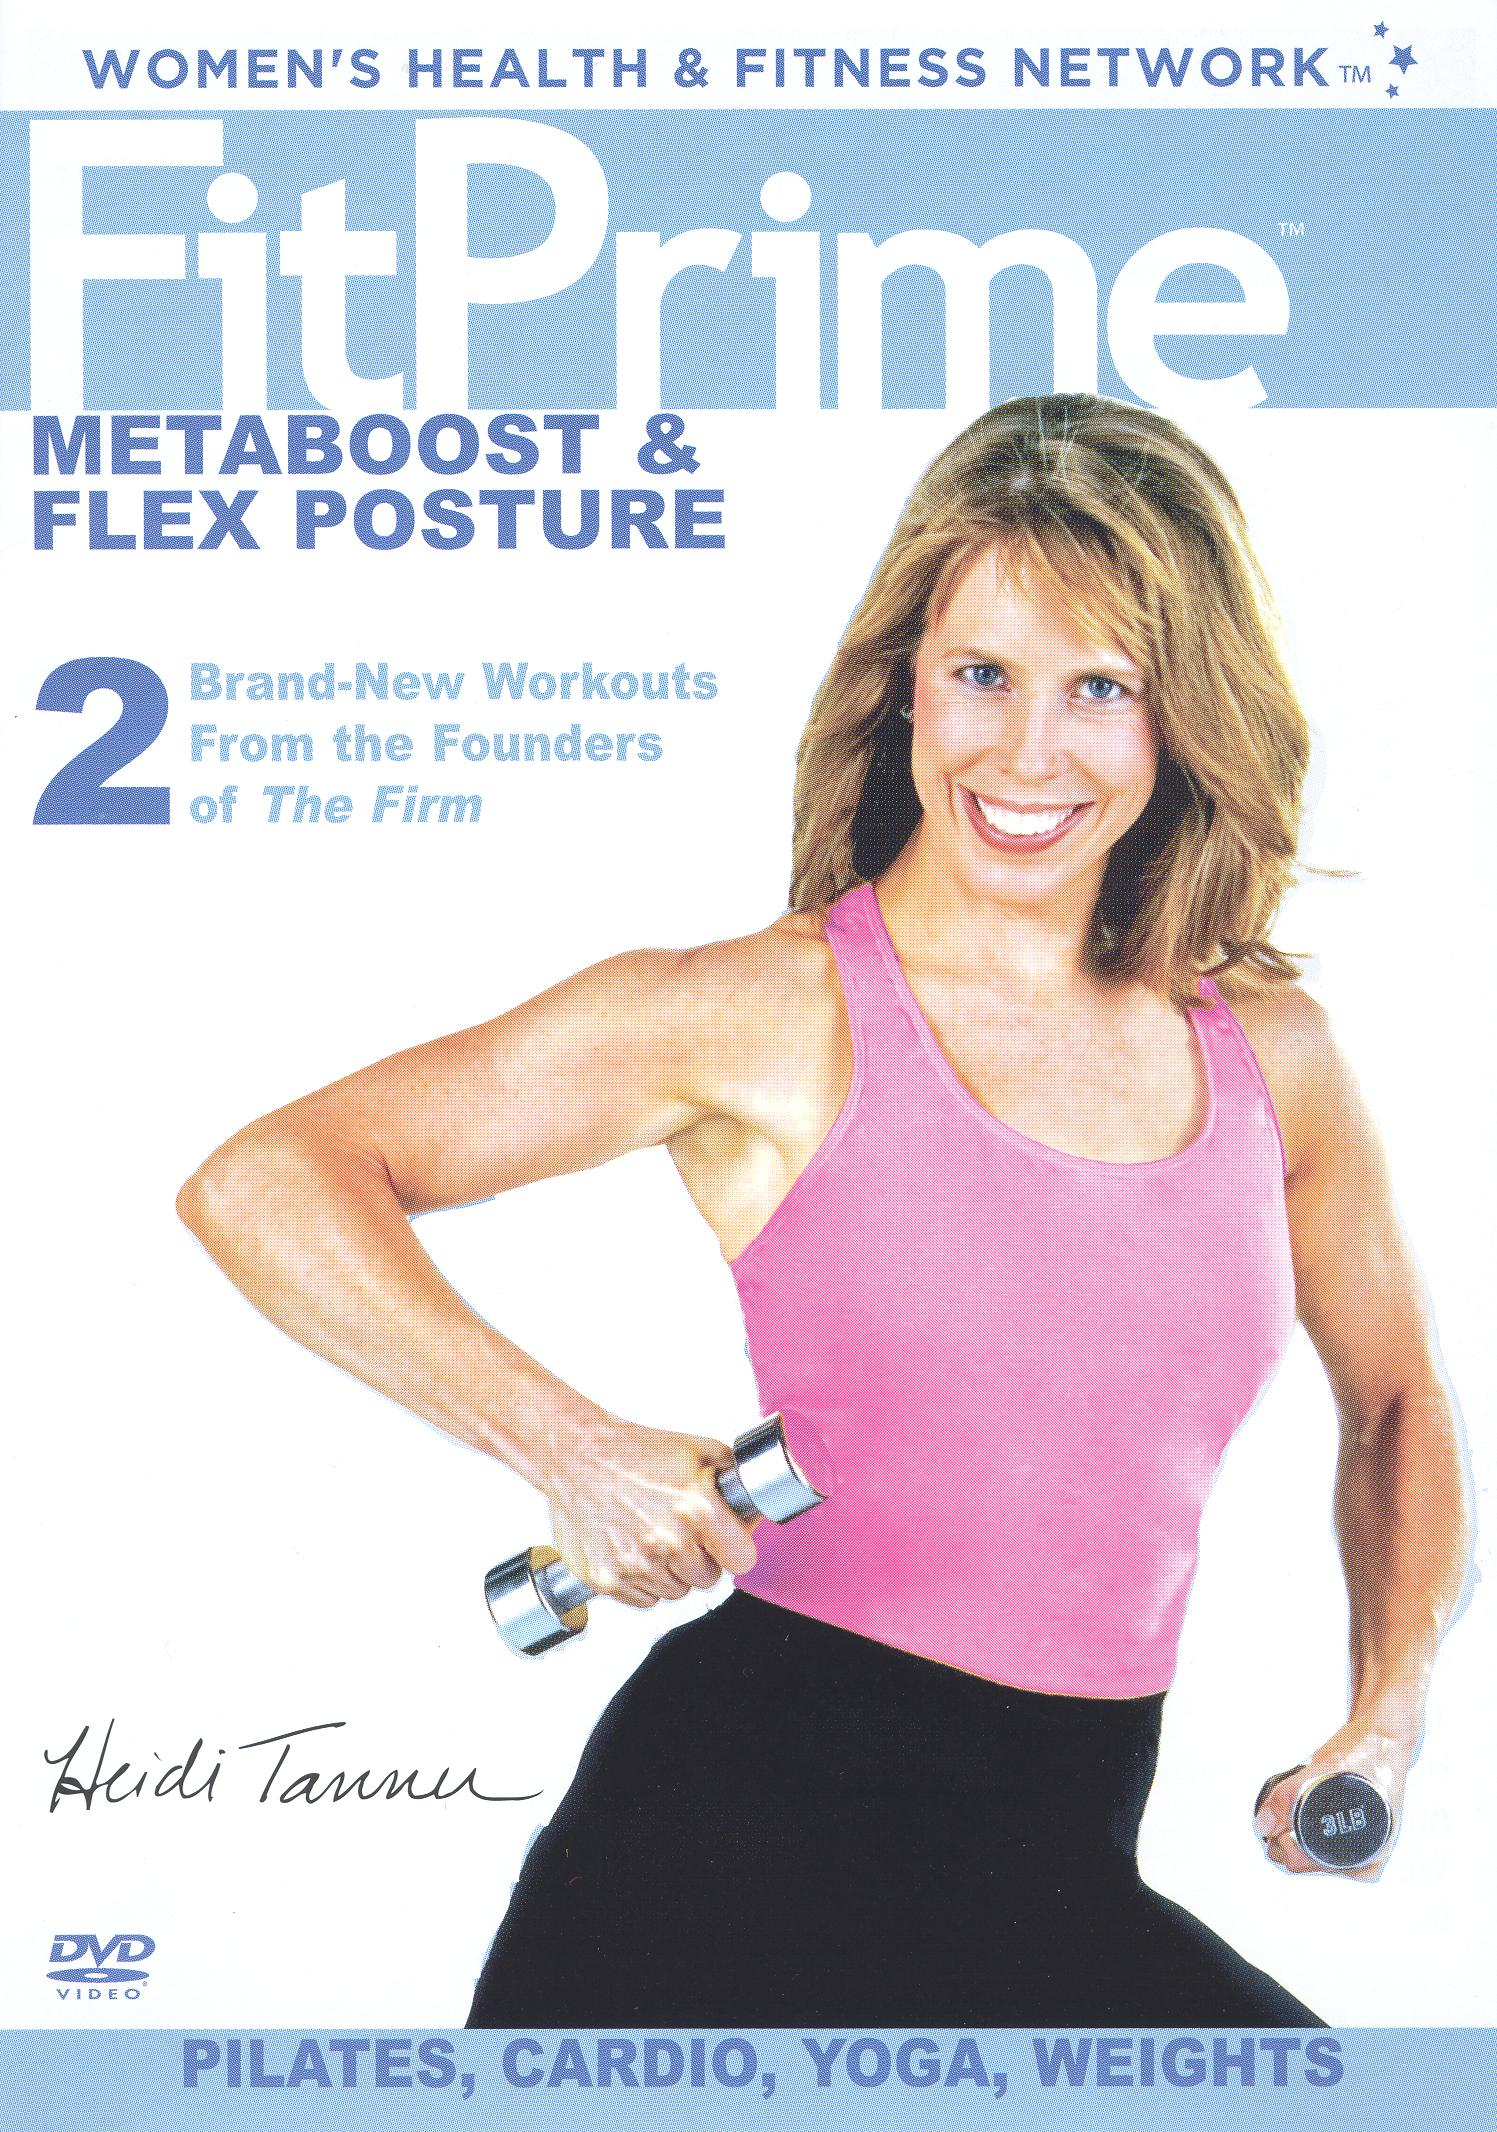 Fitprime, Vol. 1: Metaboost and Flexposture